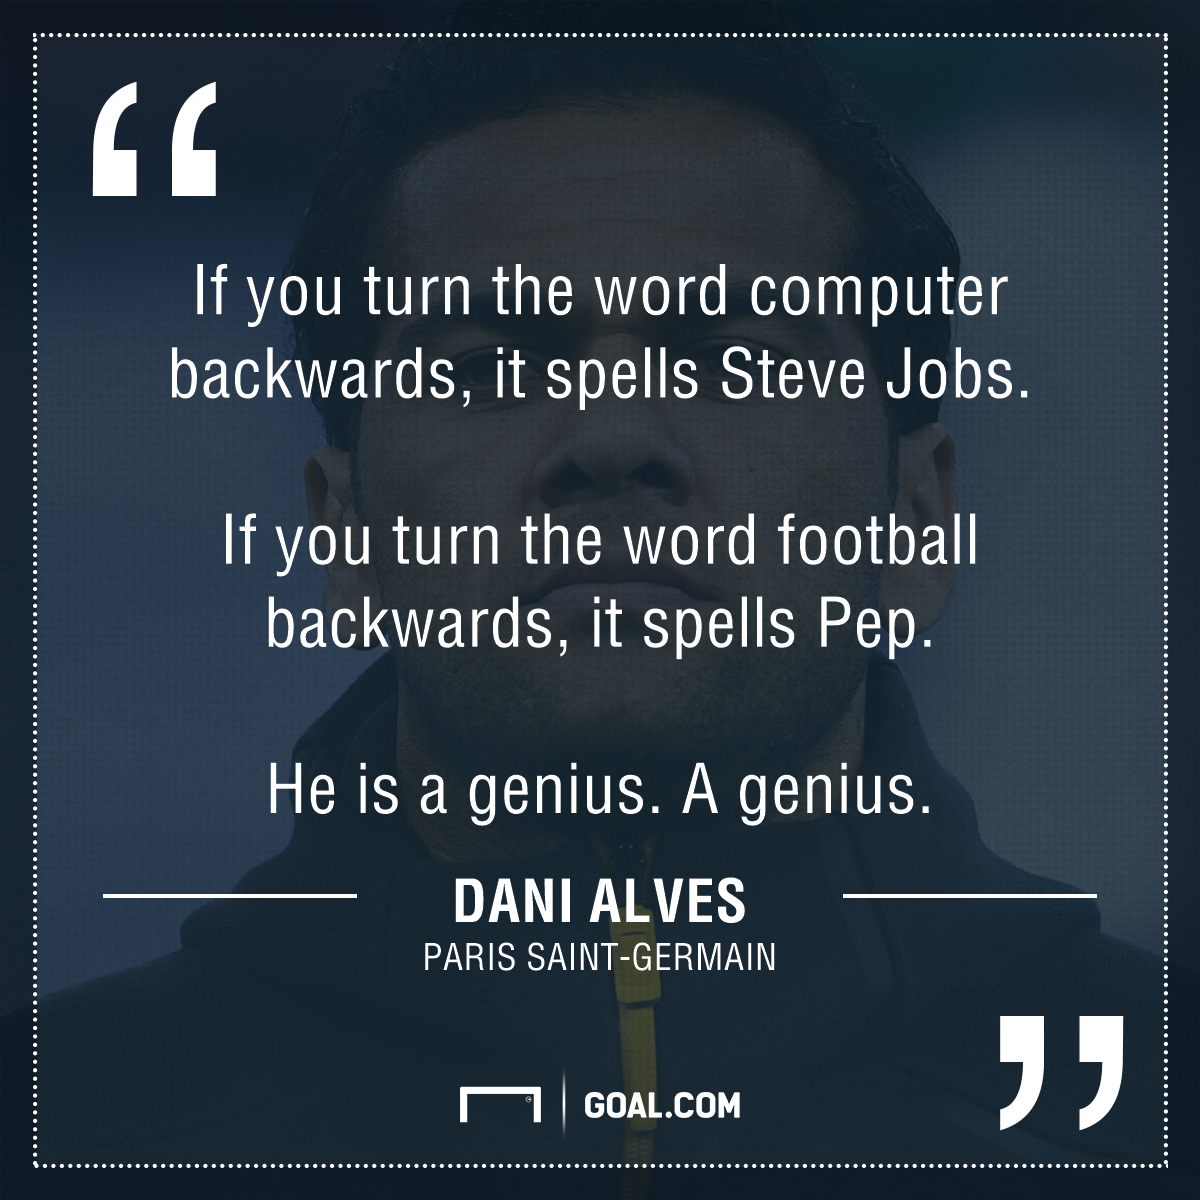 Dani Alves quote